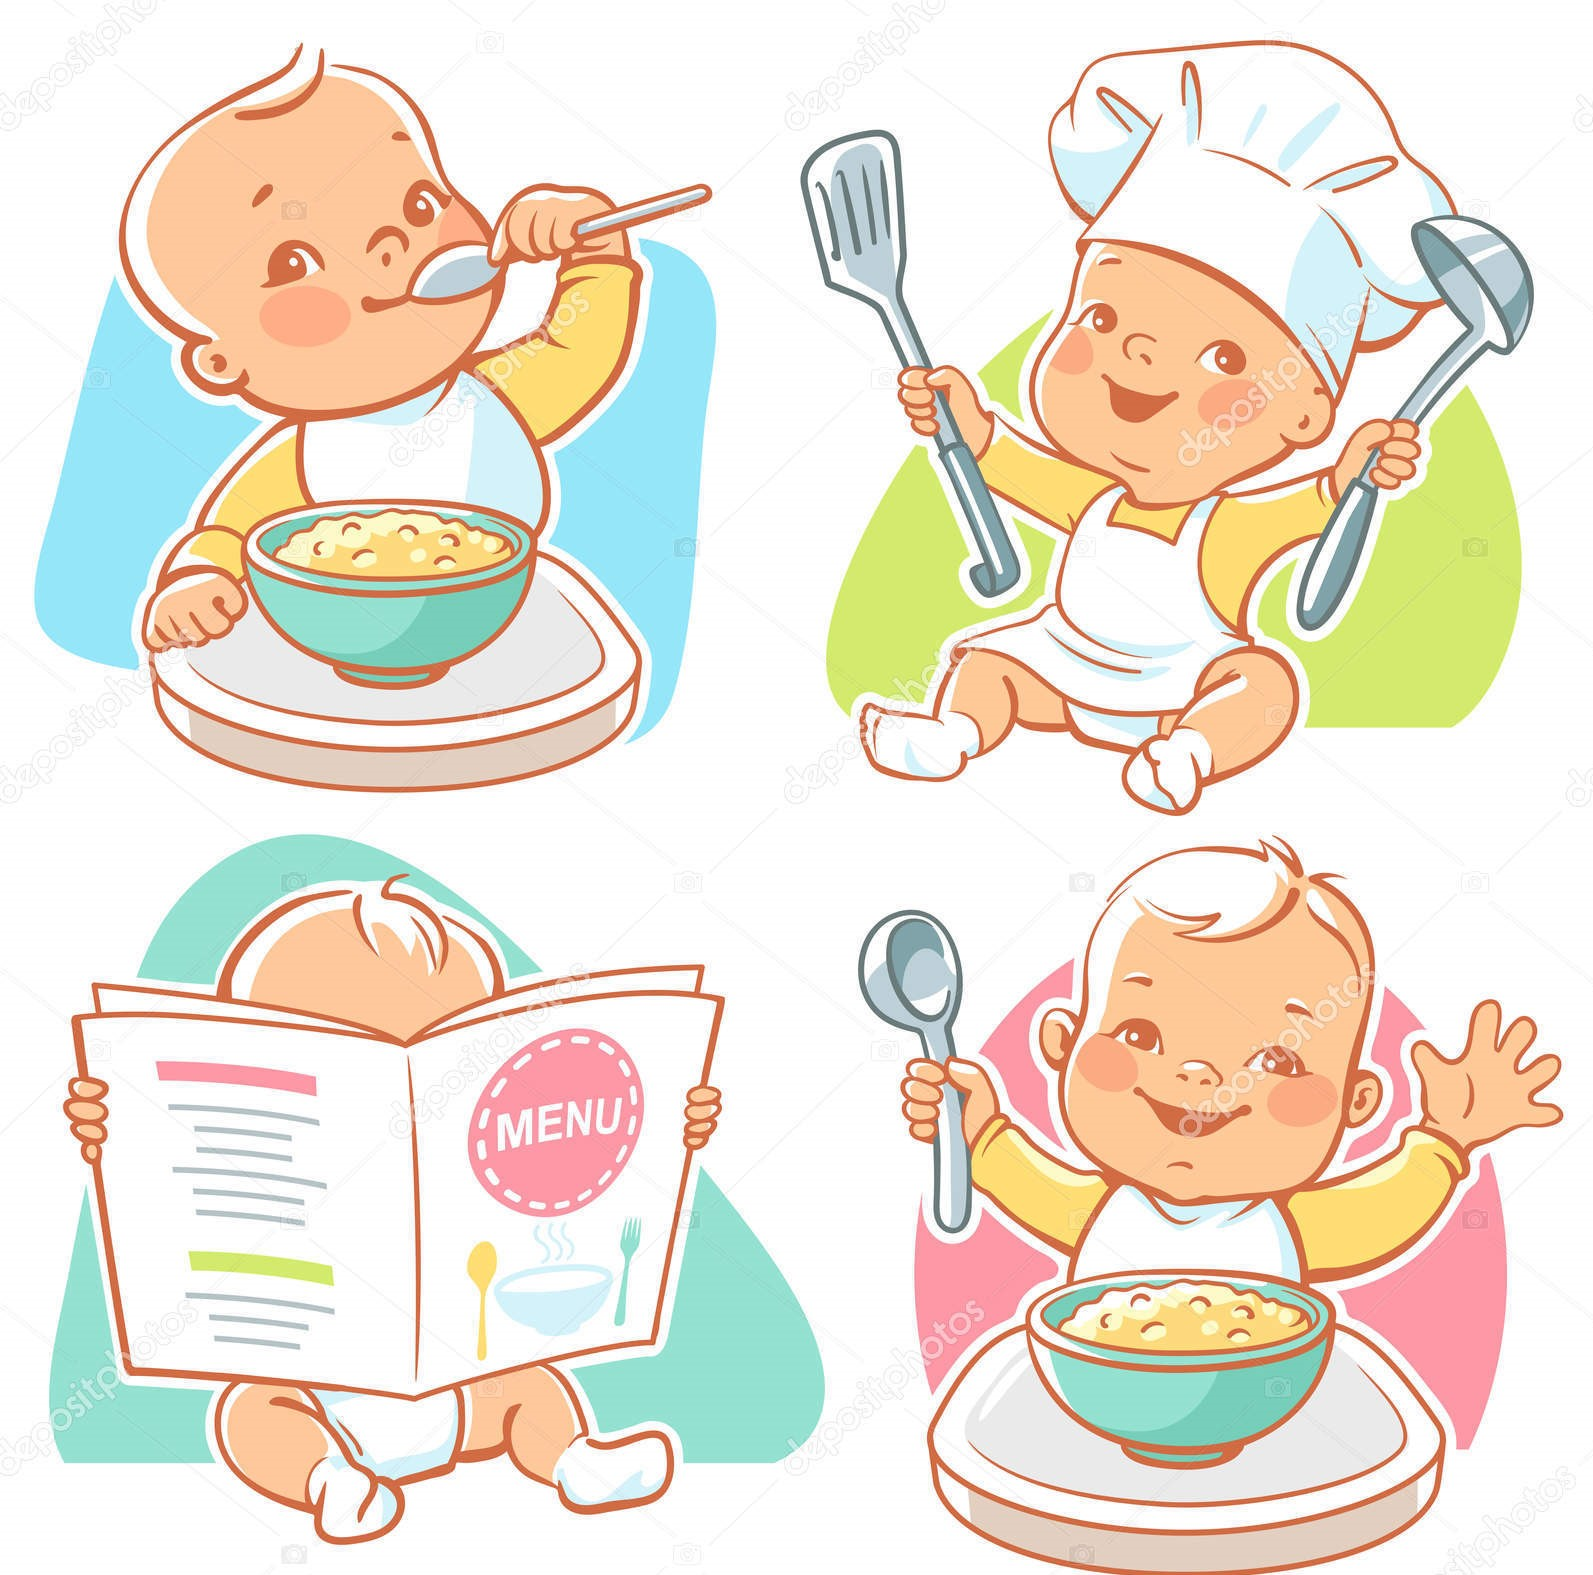 Set of vector illustrations with cute little babies. Toddler eating porridge, boy sit at table, kid in diaper reading menu, happy child wearing cook hat. Healthy food emblem. Vector illustration